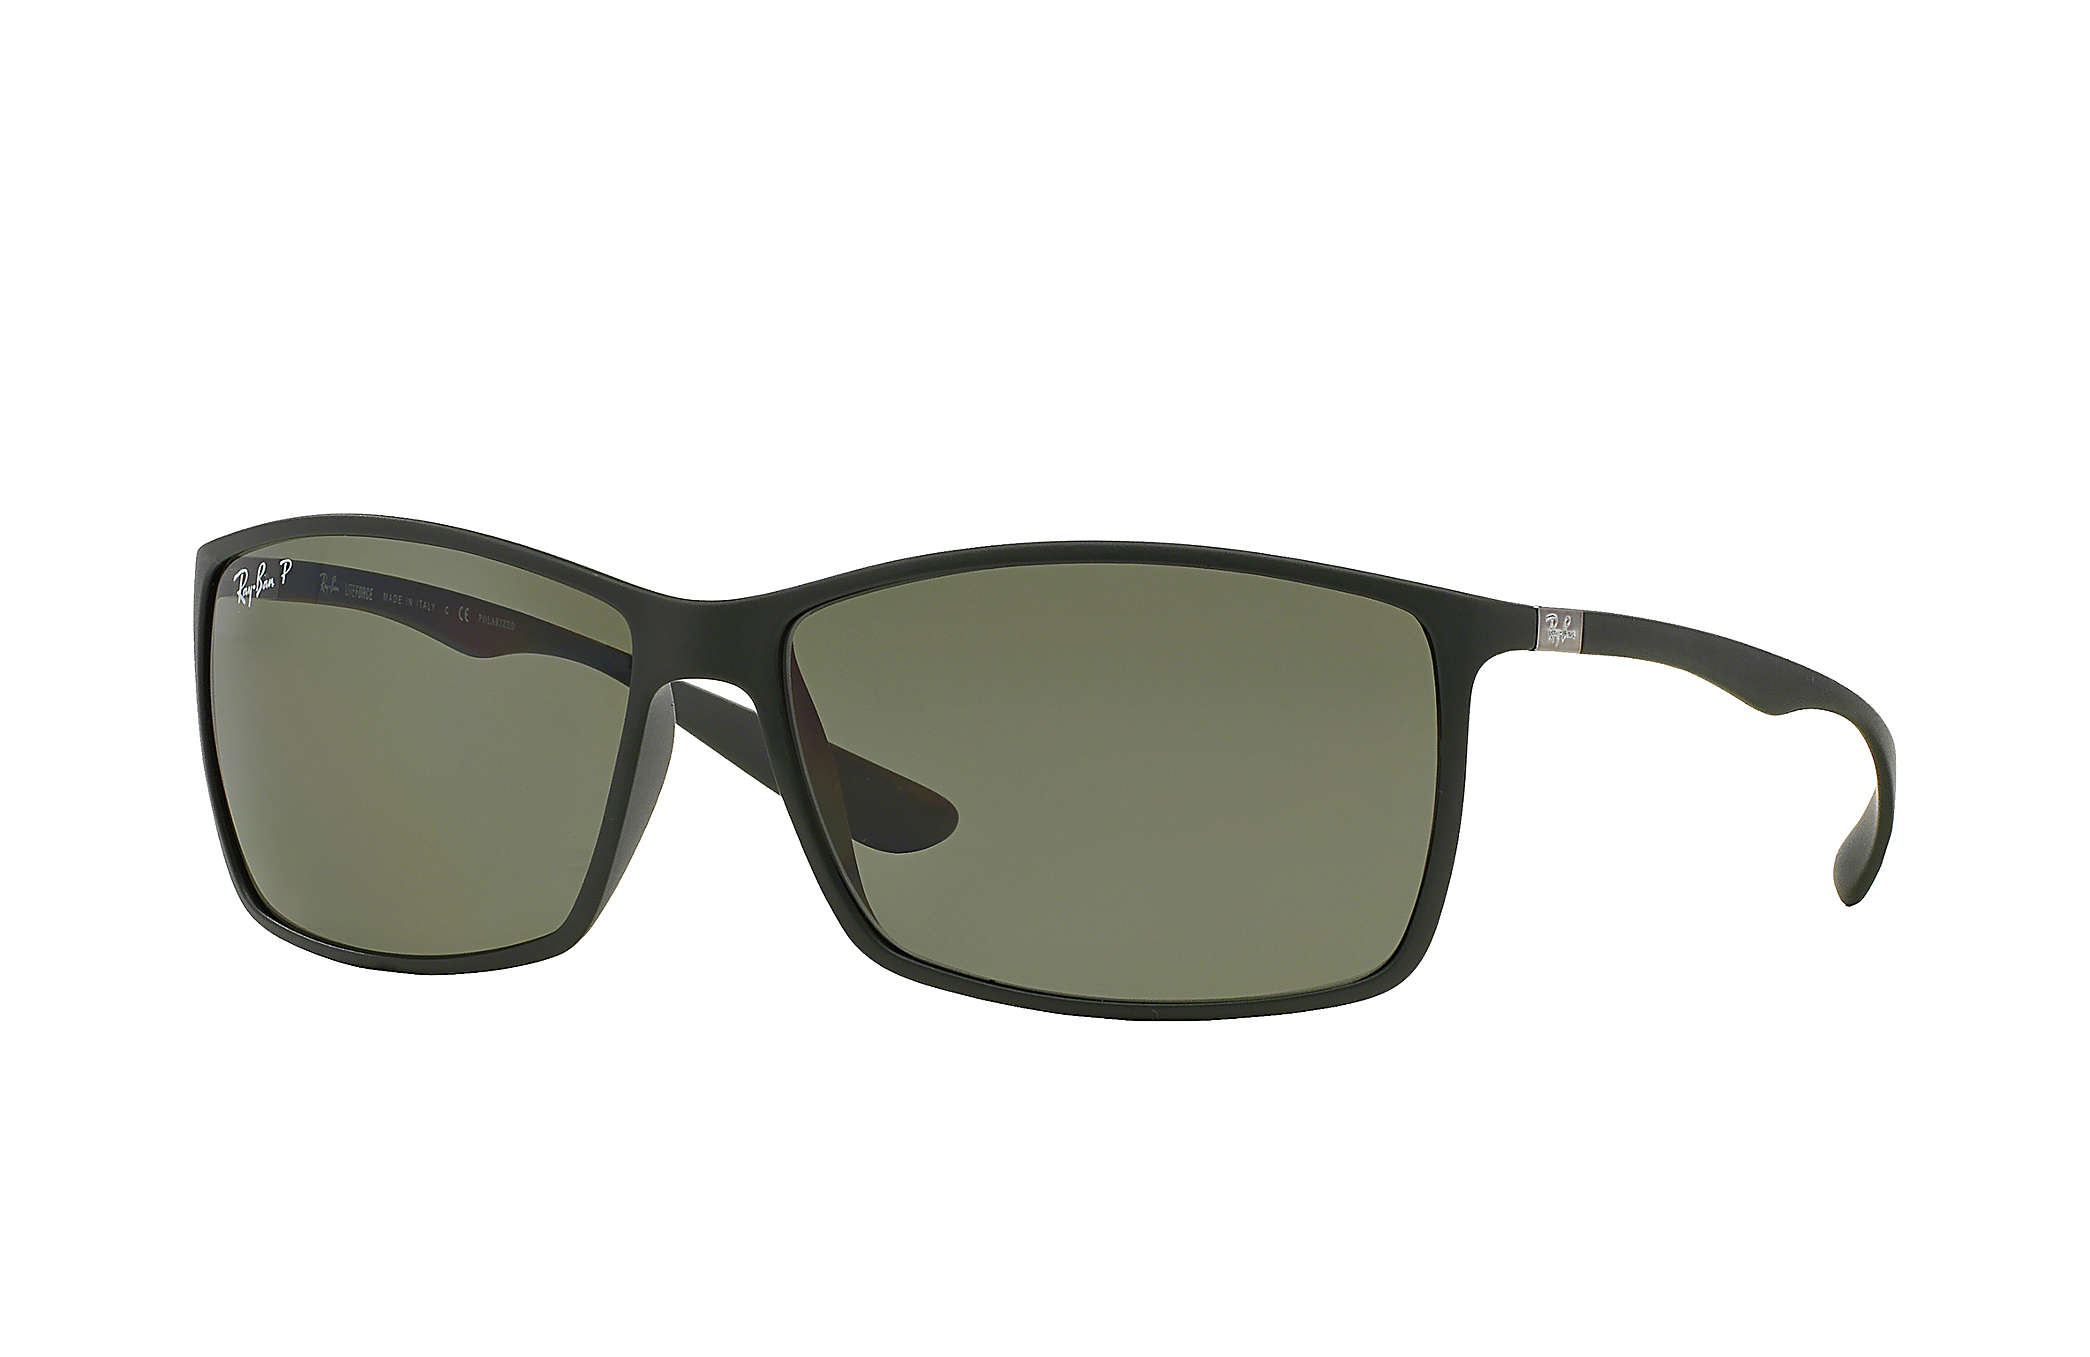 39d781bd833 Ray-Ban RB4179 Green - Liteforce - Green Polarized Lenses ...